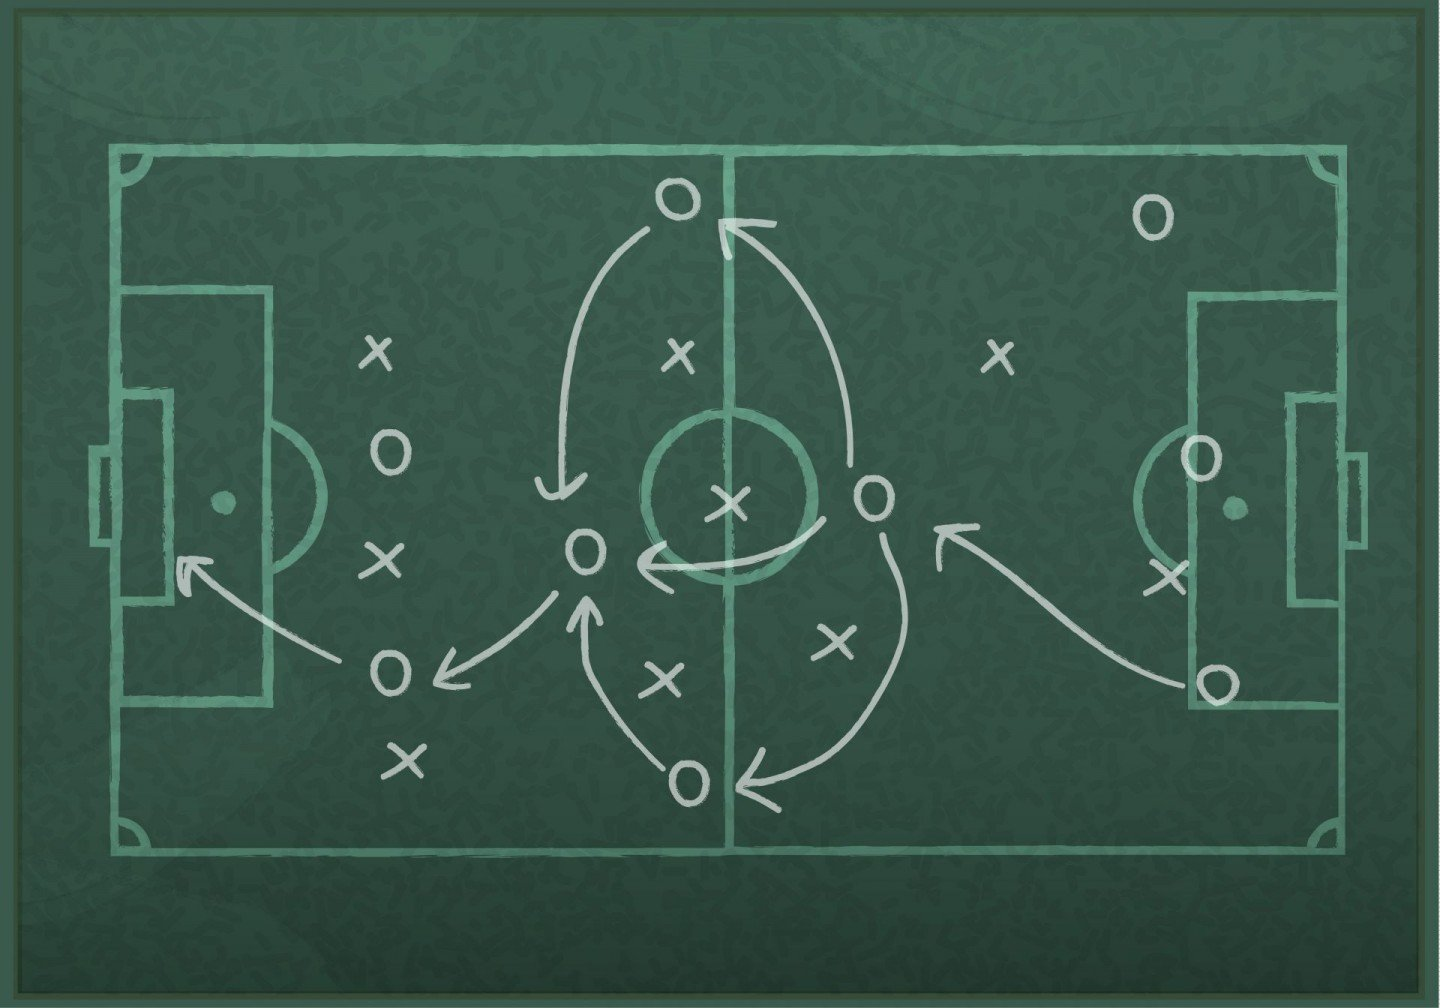 soccer strategy drawing